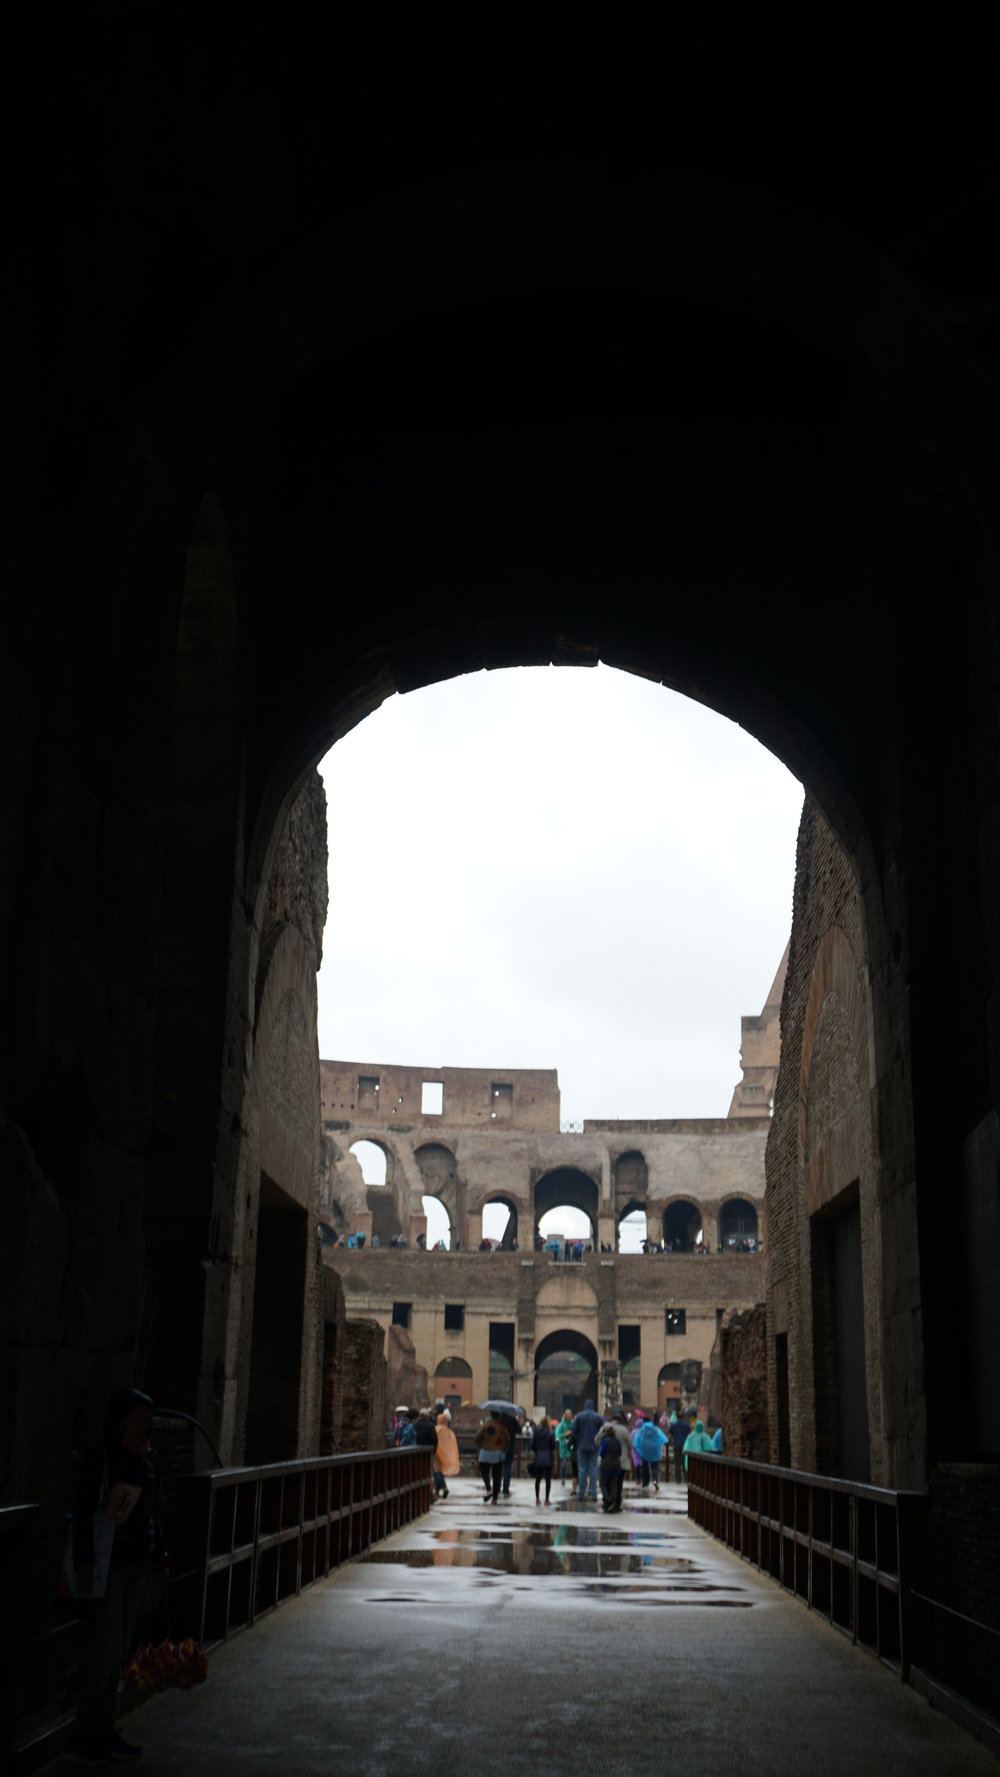 Until now, I still remember the ghostly chill as we entered through the Gate of Death, where they carted off dead gladiators and animals.